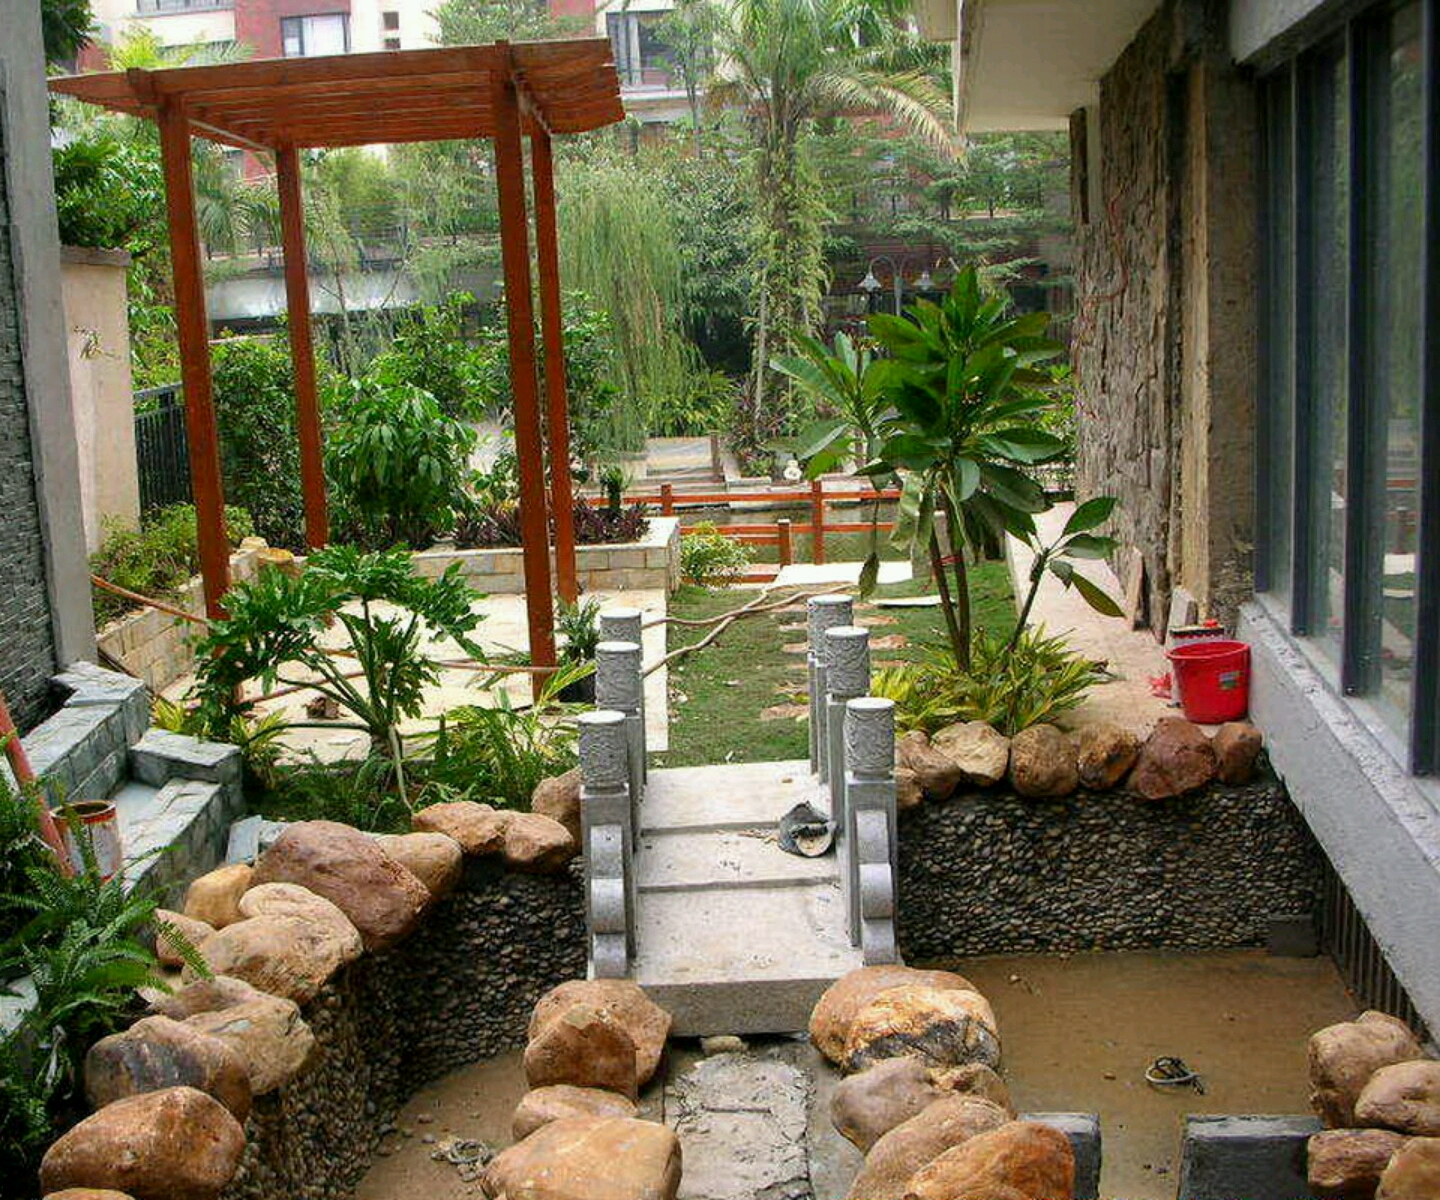 New home designs latest beautiful home gardens designs ideas - Small home garden design ideas ...